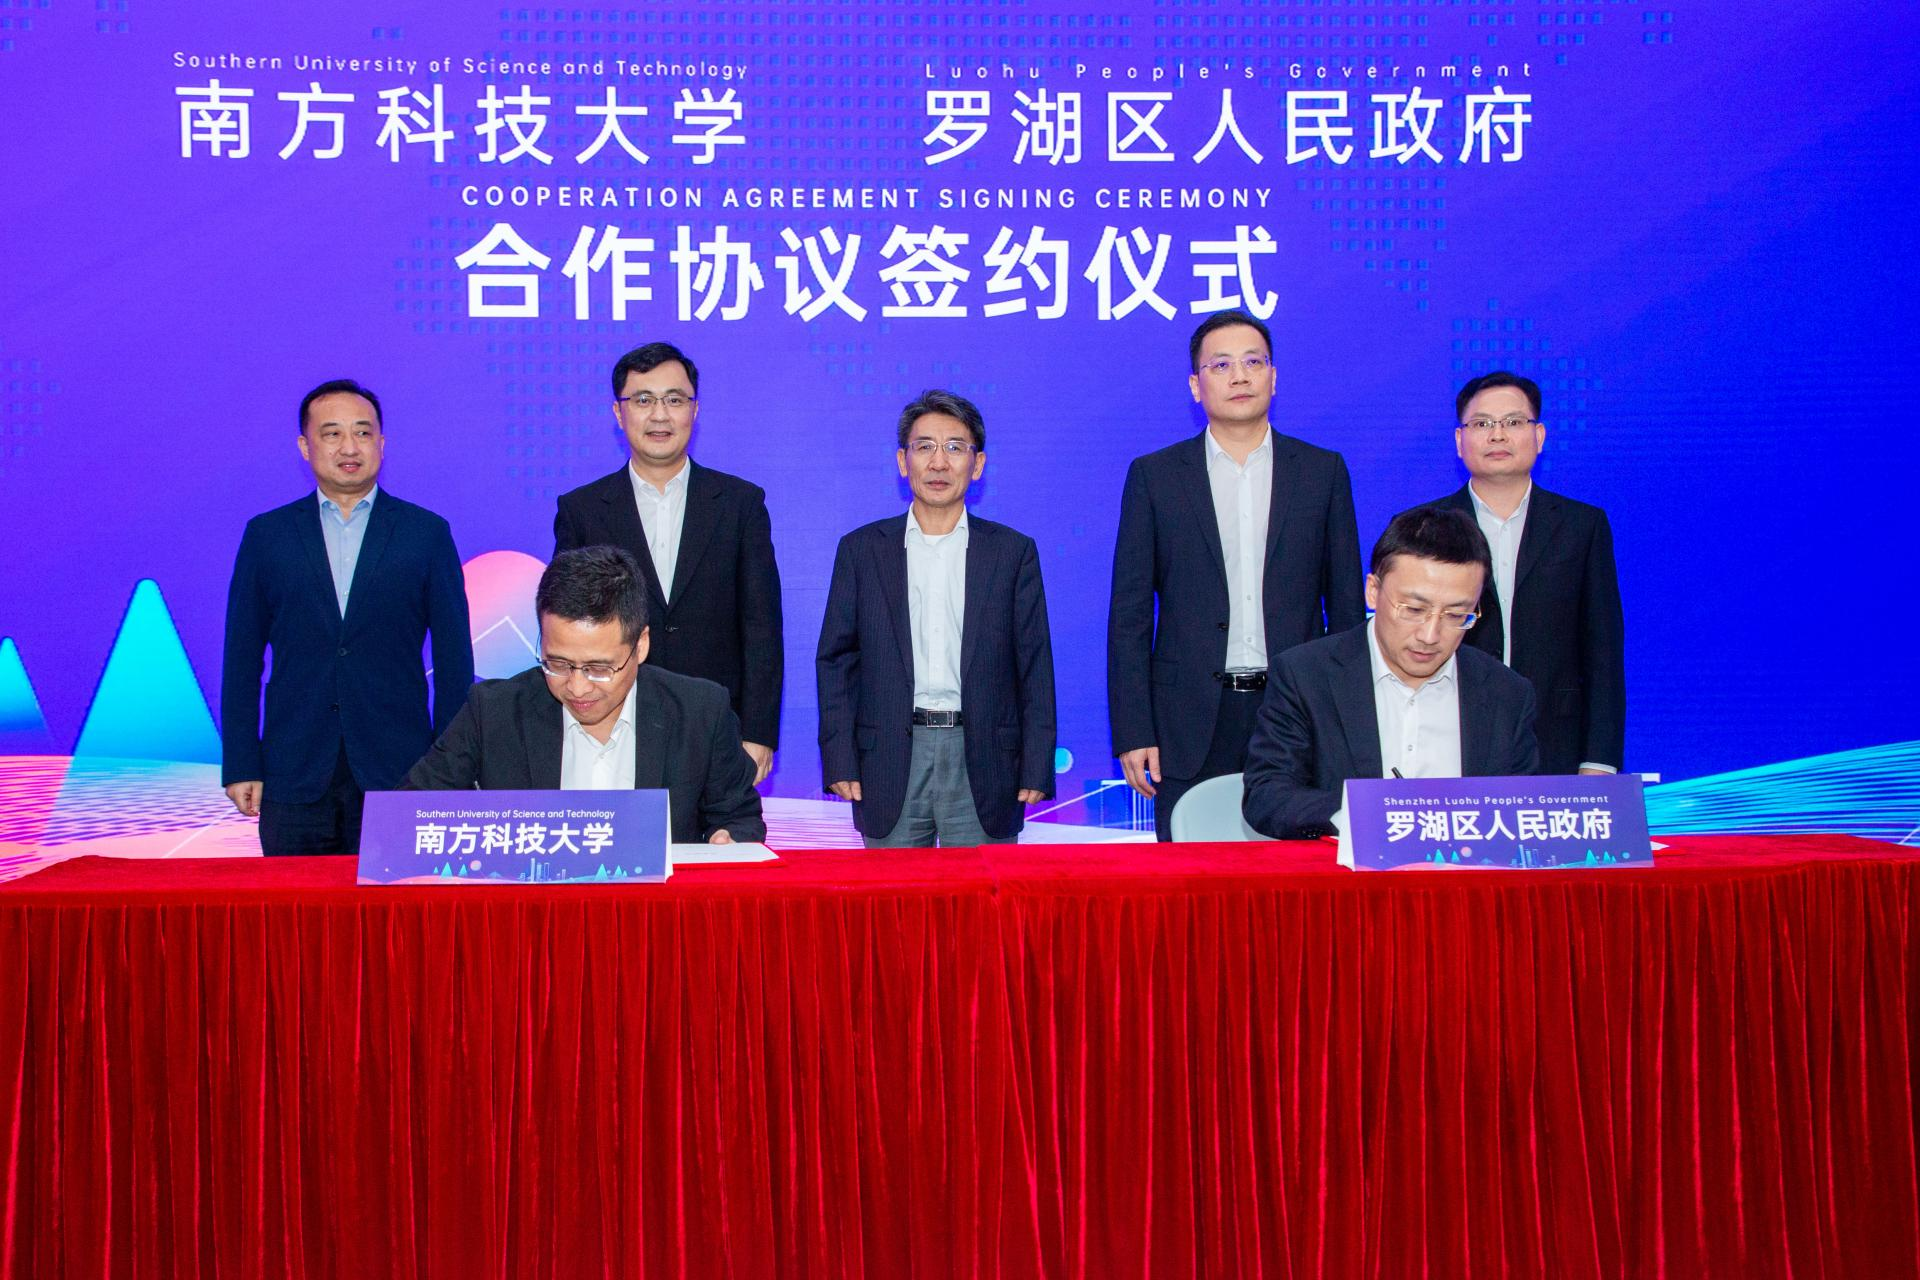 SUSTech and Luohu District People's Government sign strategic cooperation agreement